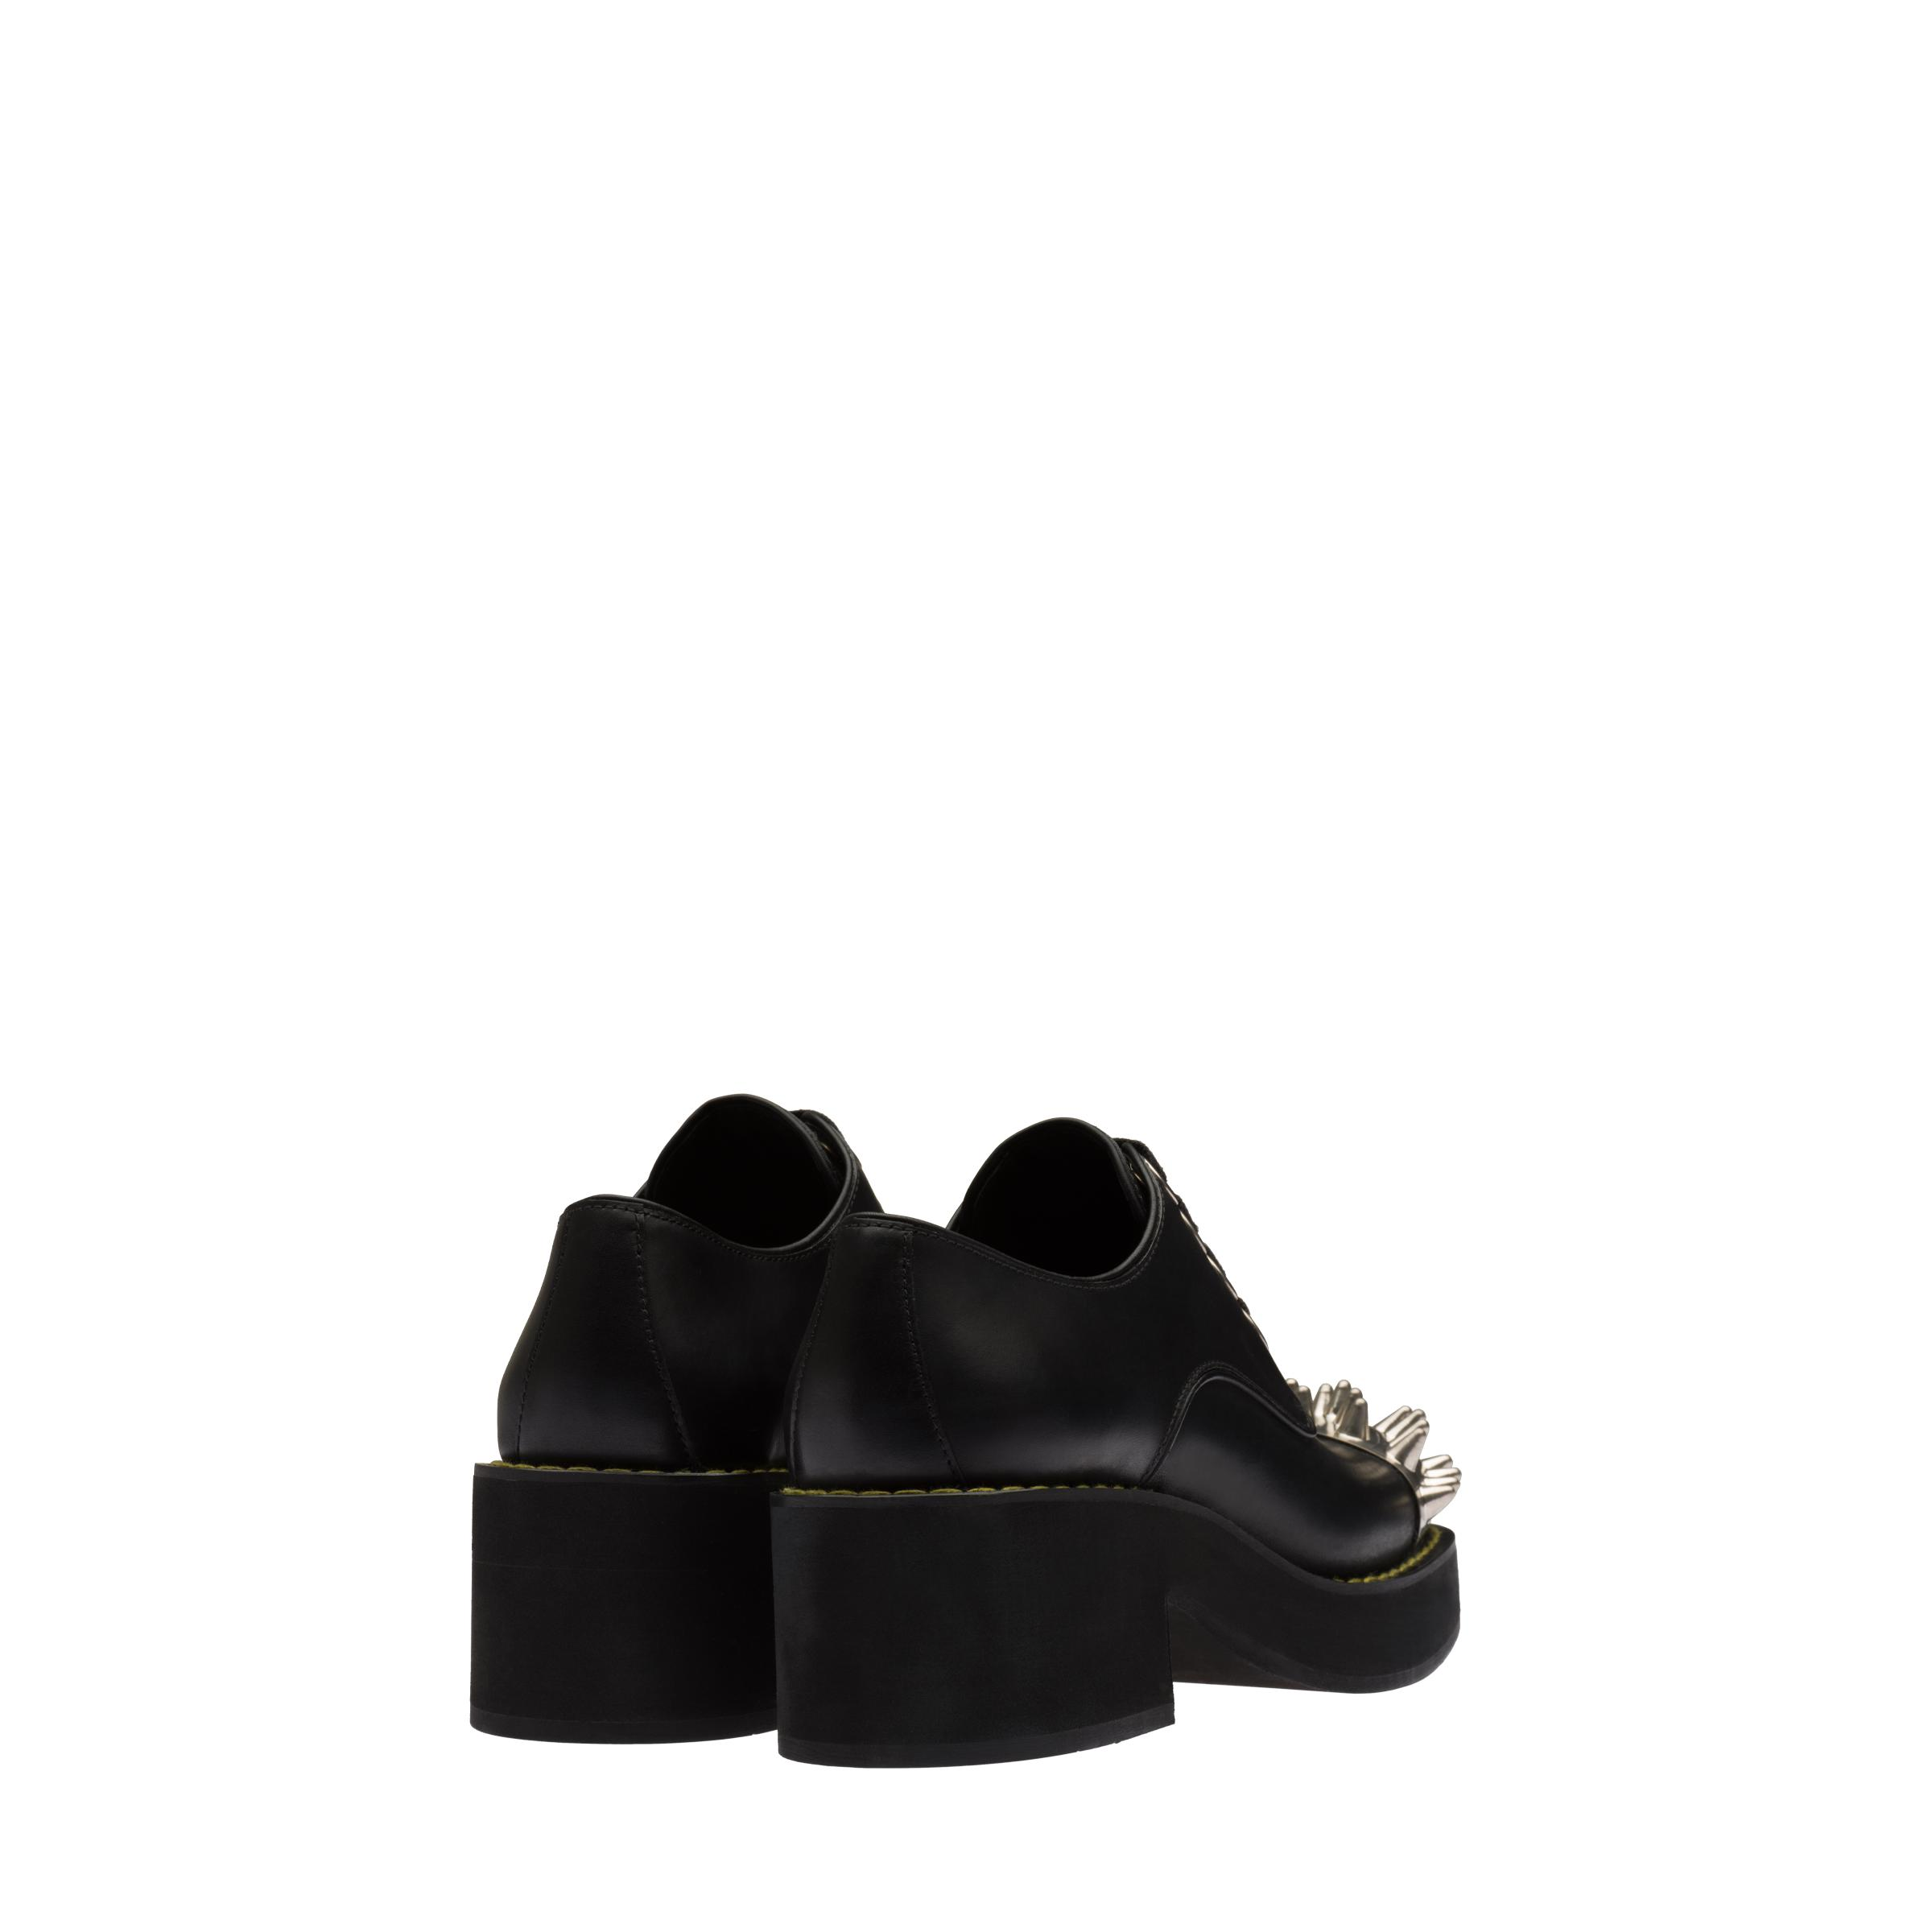 Studded Leather Laced Derby Shoes Women Black 3